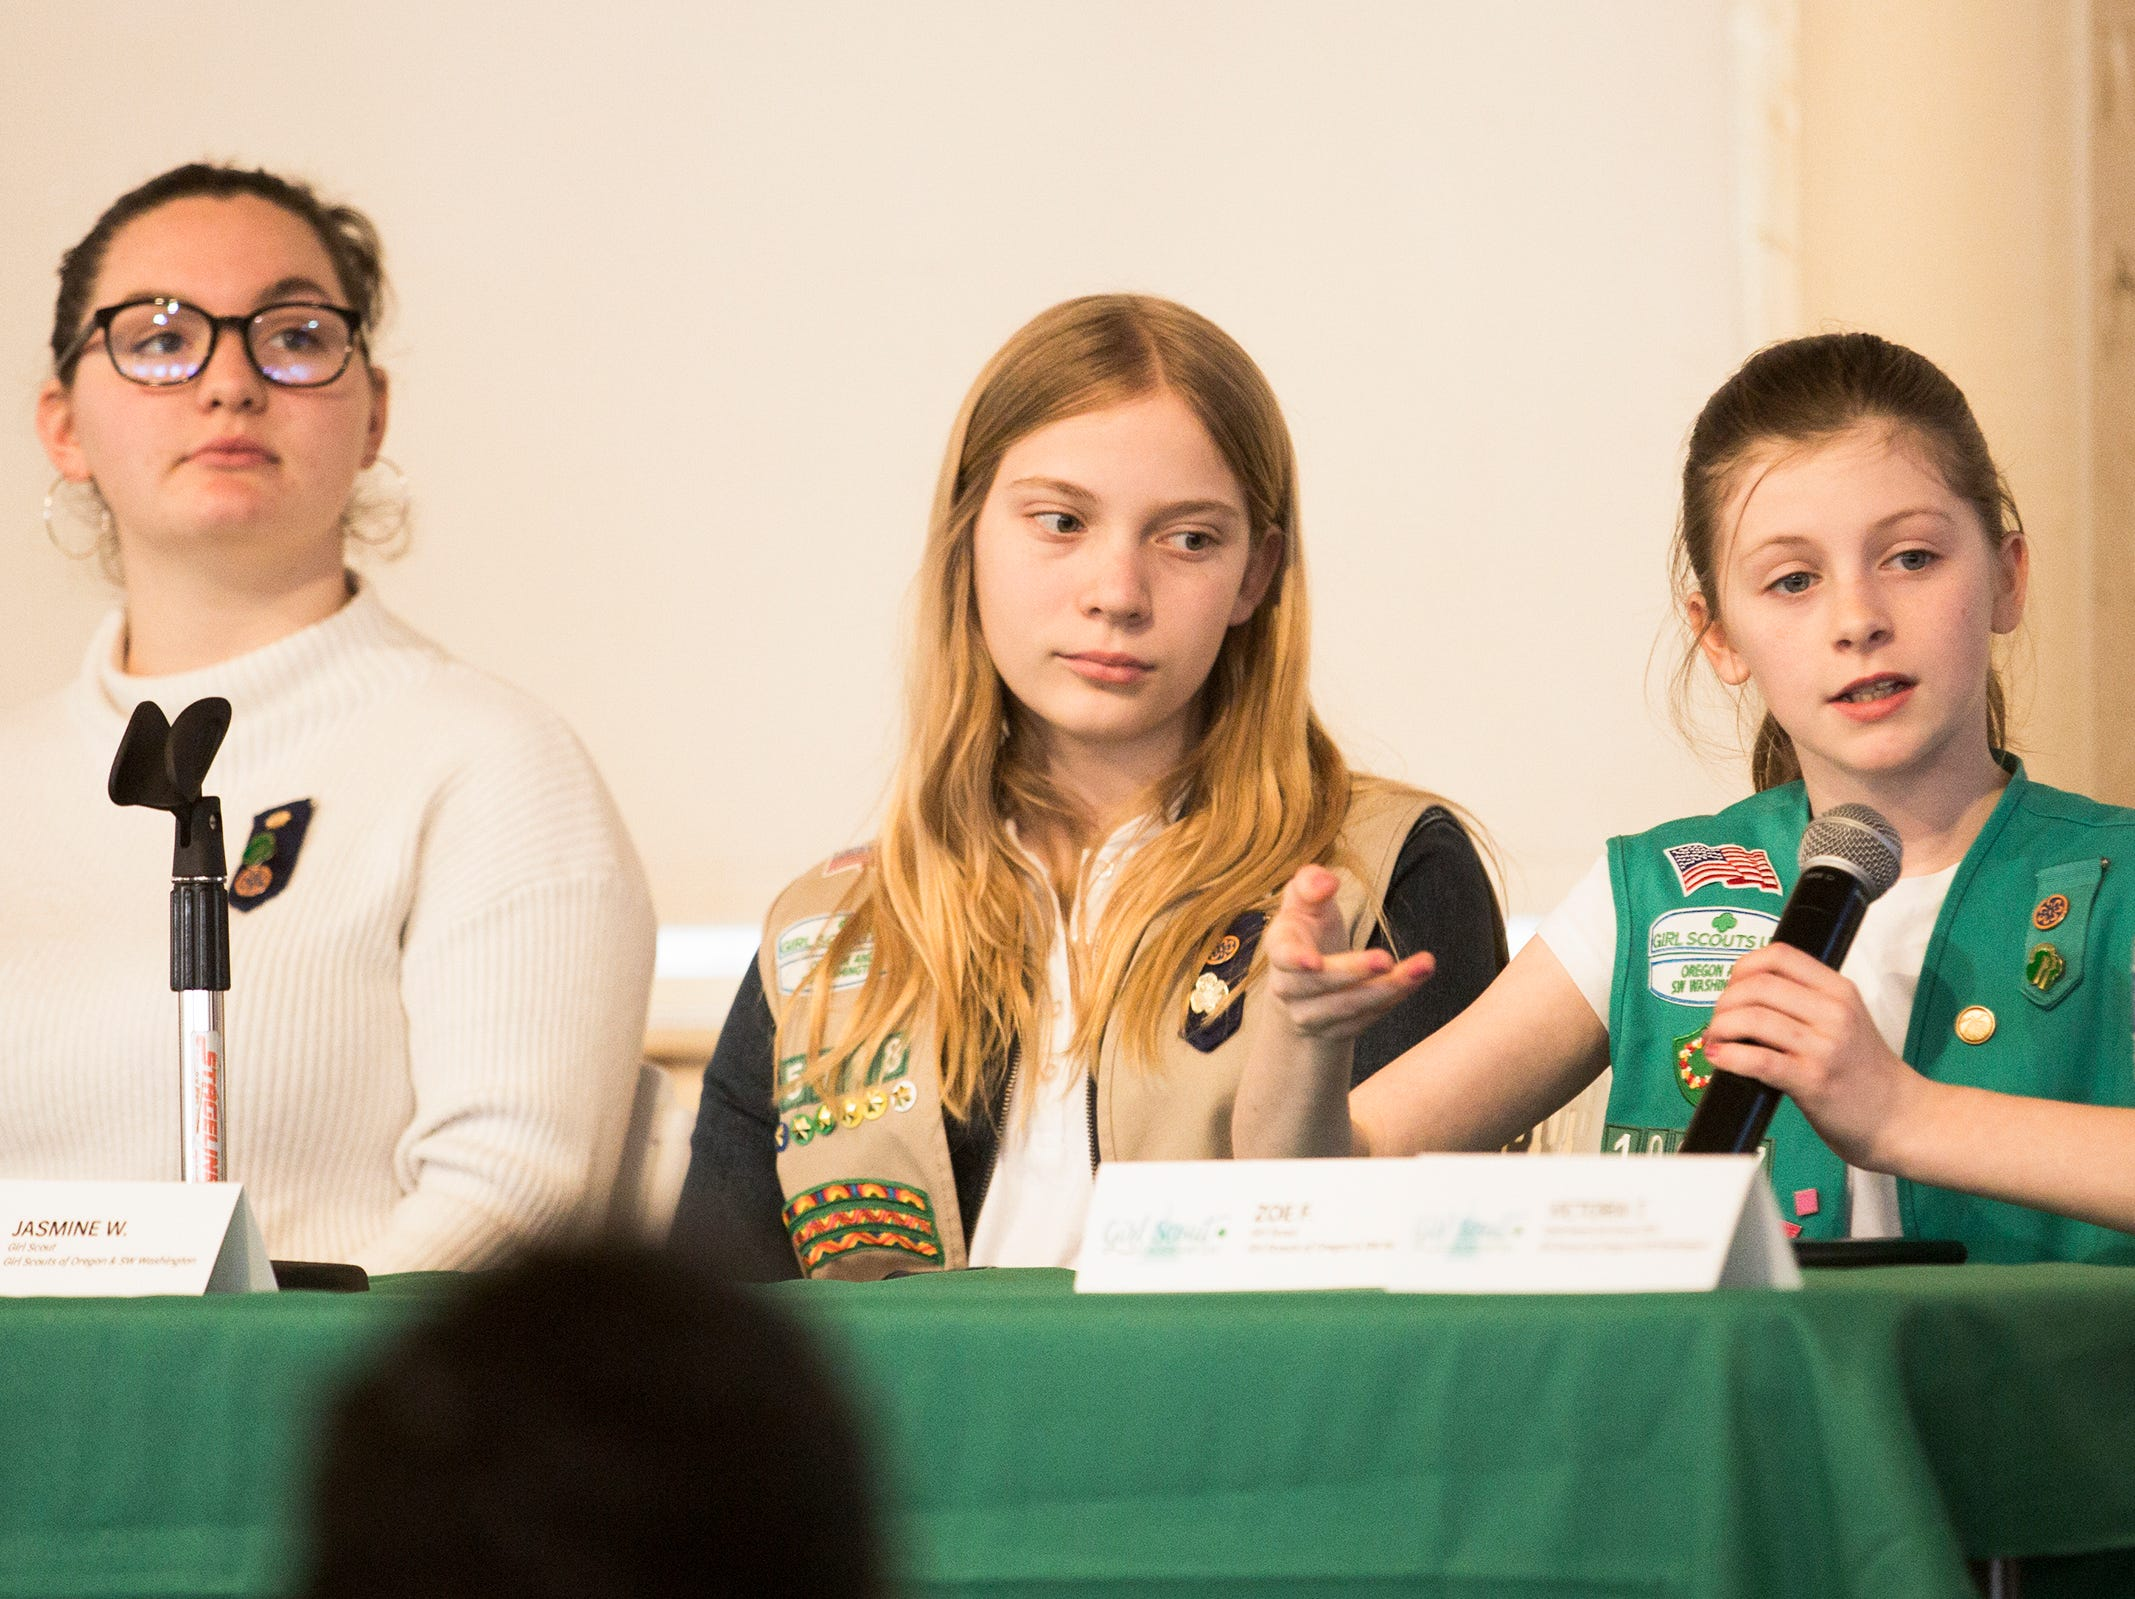 Honorary Girl Scout Zoe Farrell speaks about her role in getting the Good Samaritan law, which allows to people to break into cars to protect a child or pet, passed during Girl Scout Leadership Day at the Oregon State Capitol in Salem March 12, 2019.